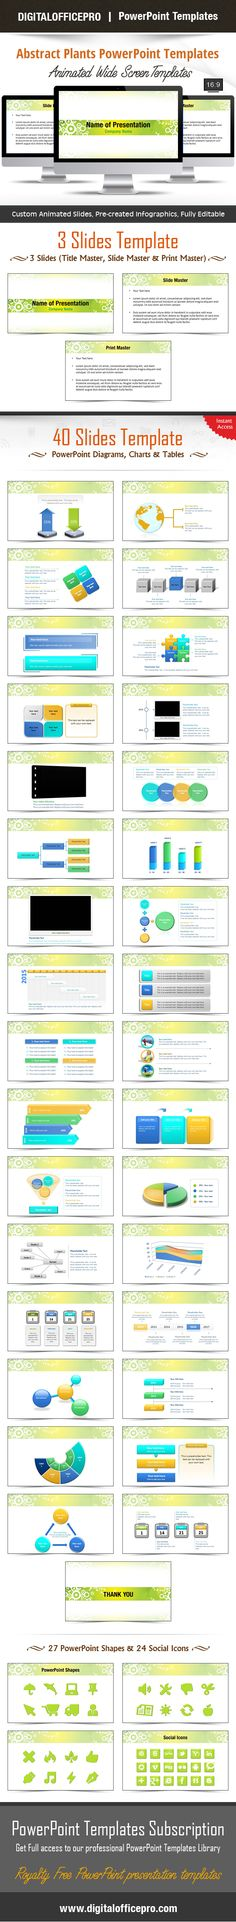 Server Tower PowerPoint Template Backgrounds - delivery document template